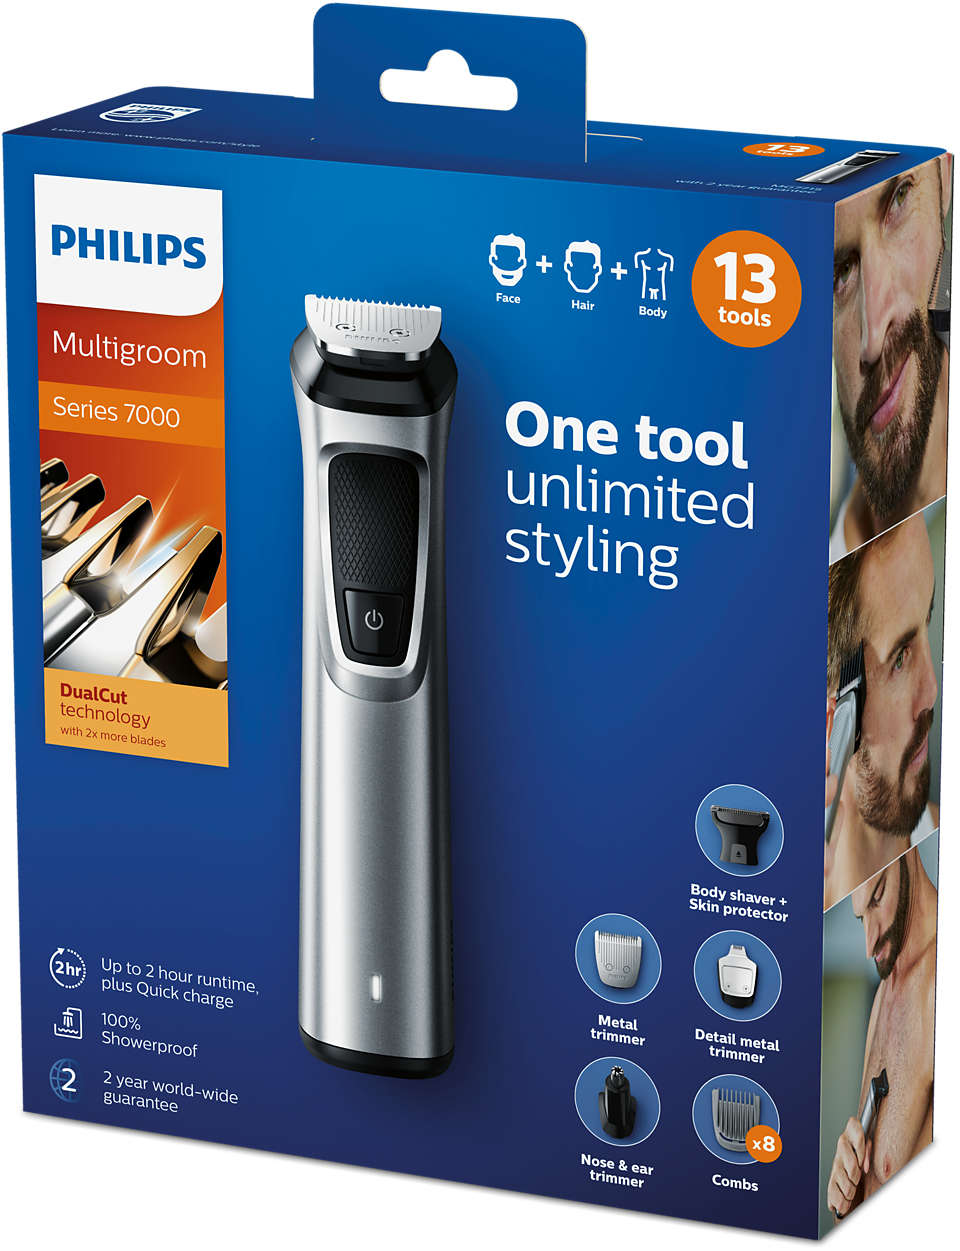 Philips Professional 13 in 1 Man Grooming Kit Mg7715/15 - Great for Barbers and Stylists - Run Time cordless 120 Minutes Over enlarge